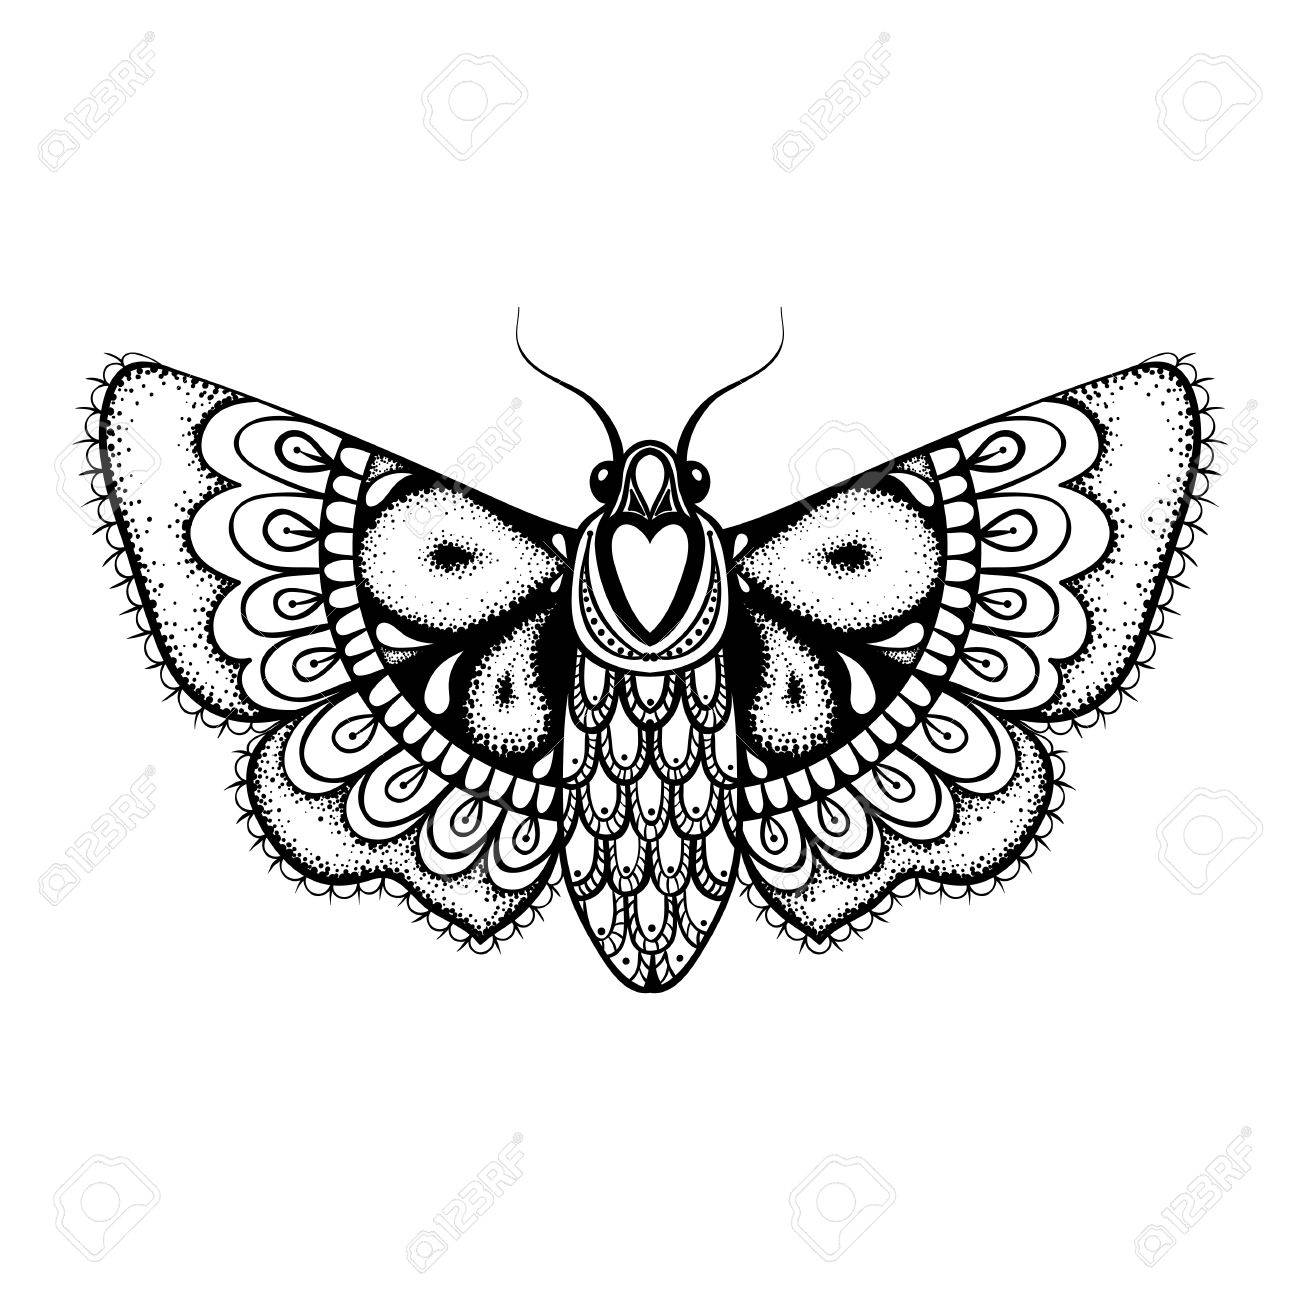 1300x1300 Hand Drawn Artistically Black Butterfly, Cute Ornamental Patterned